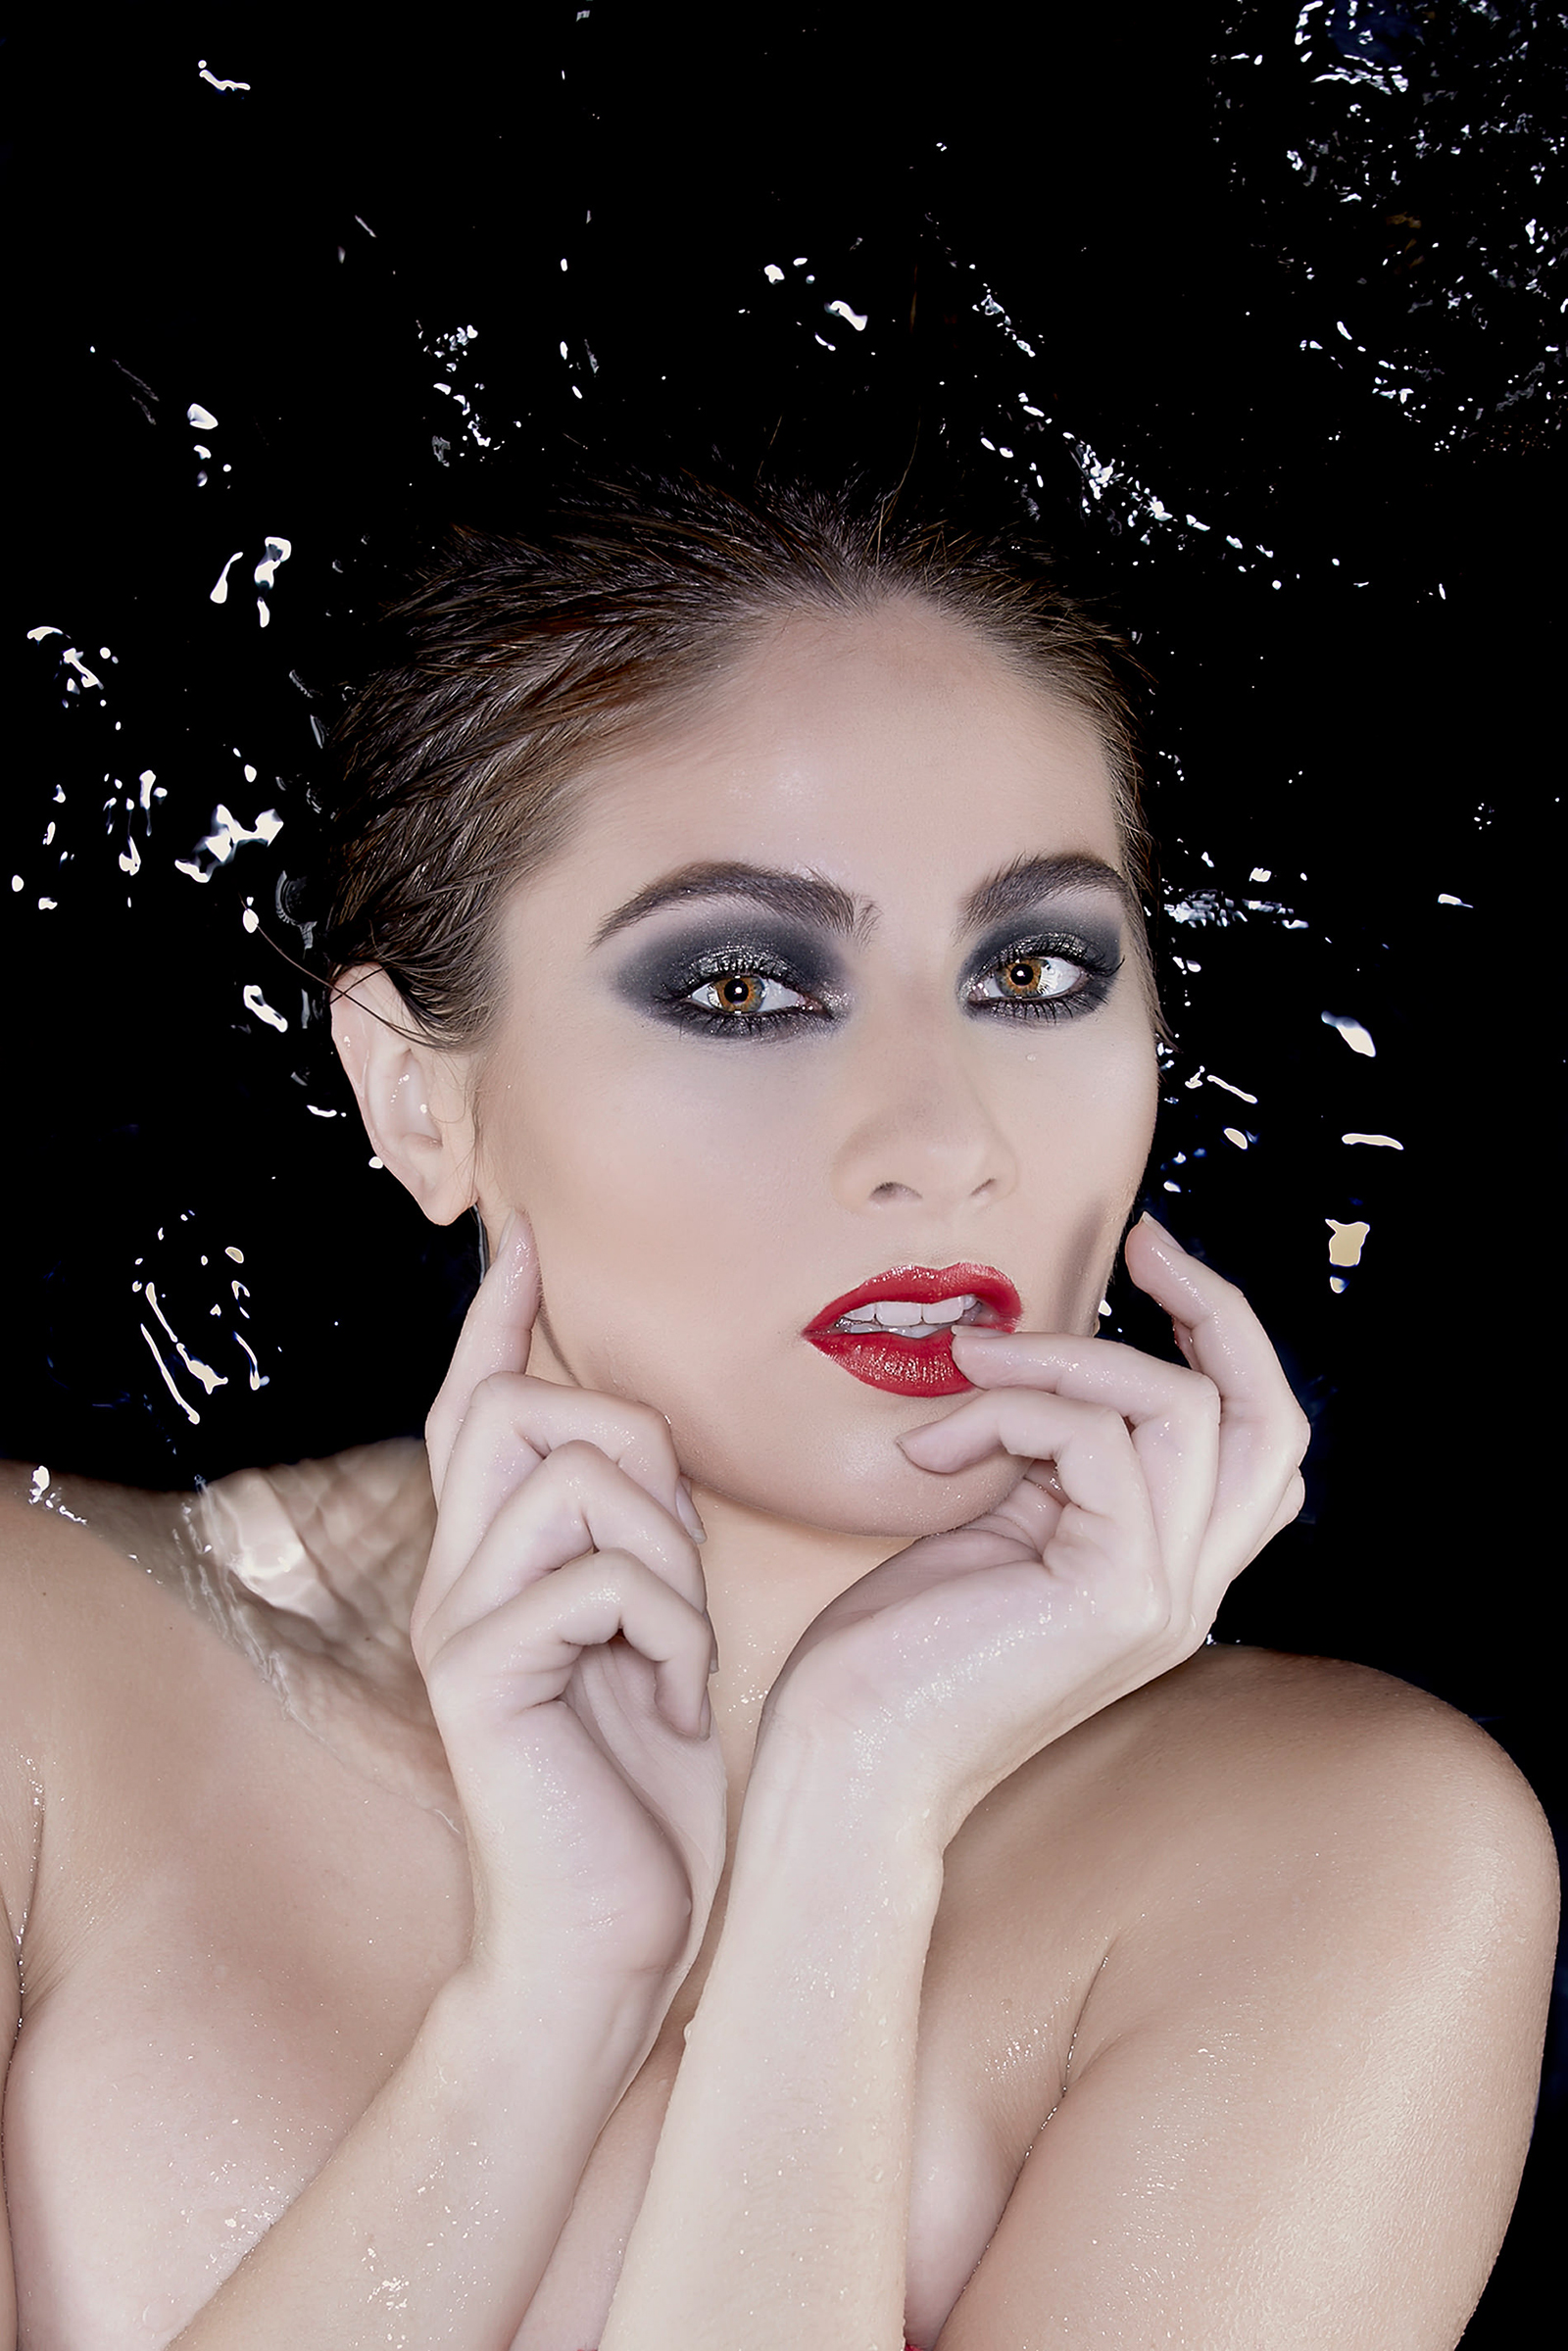 marcosvaldés|FOTÓGRAFO® commercial, portrait and underwater photographer